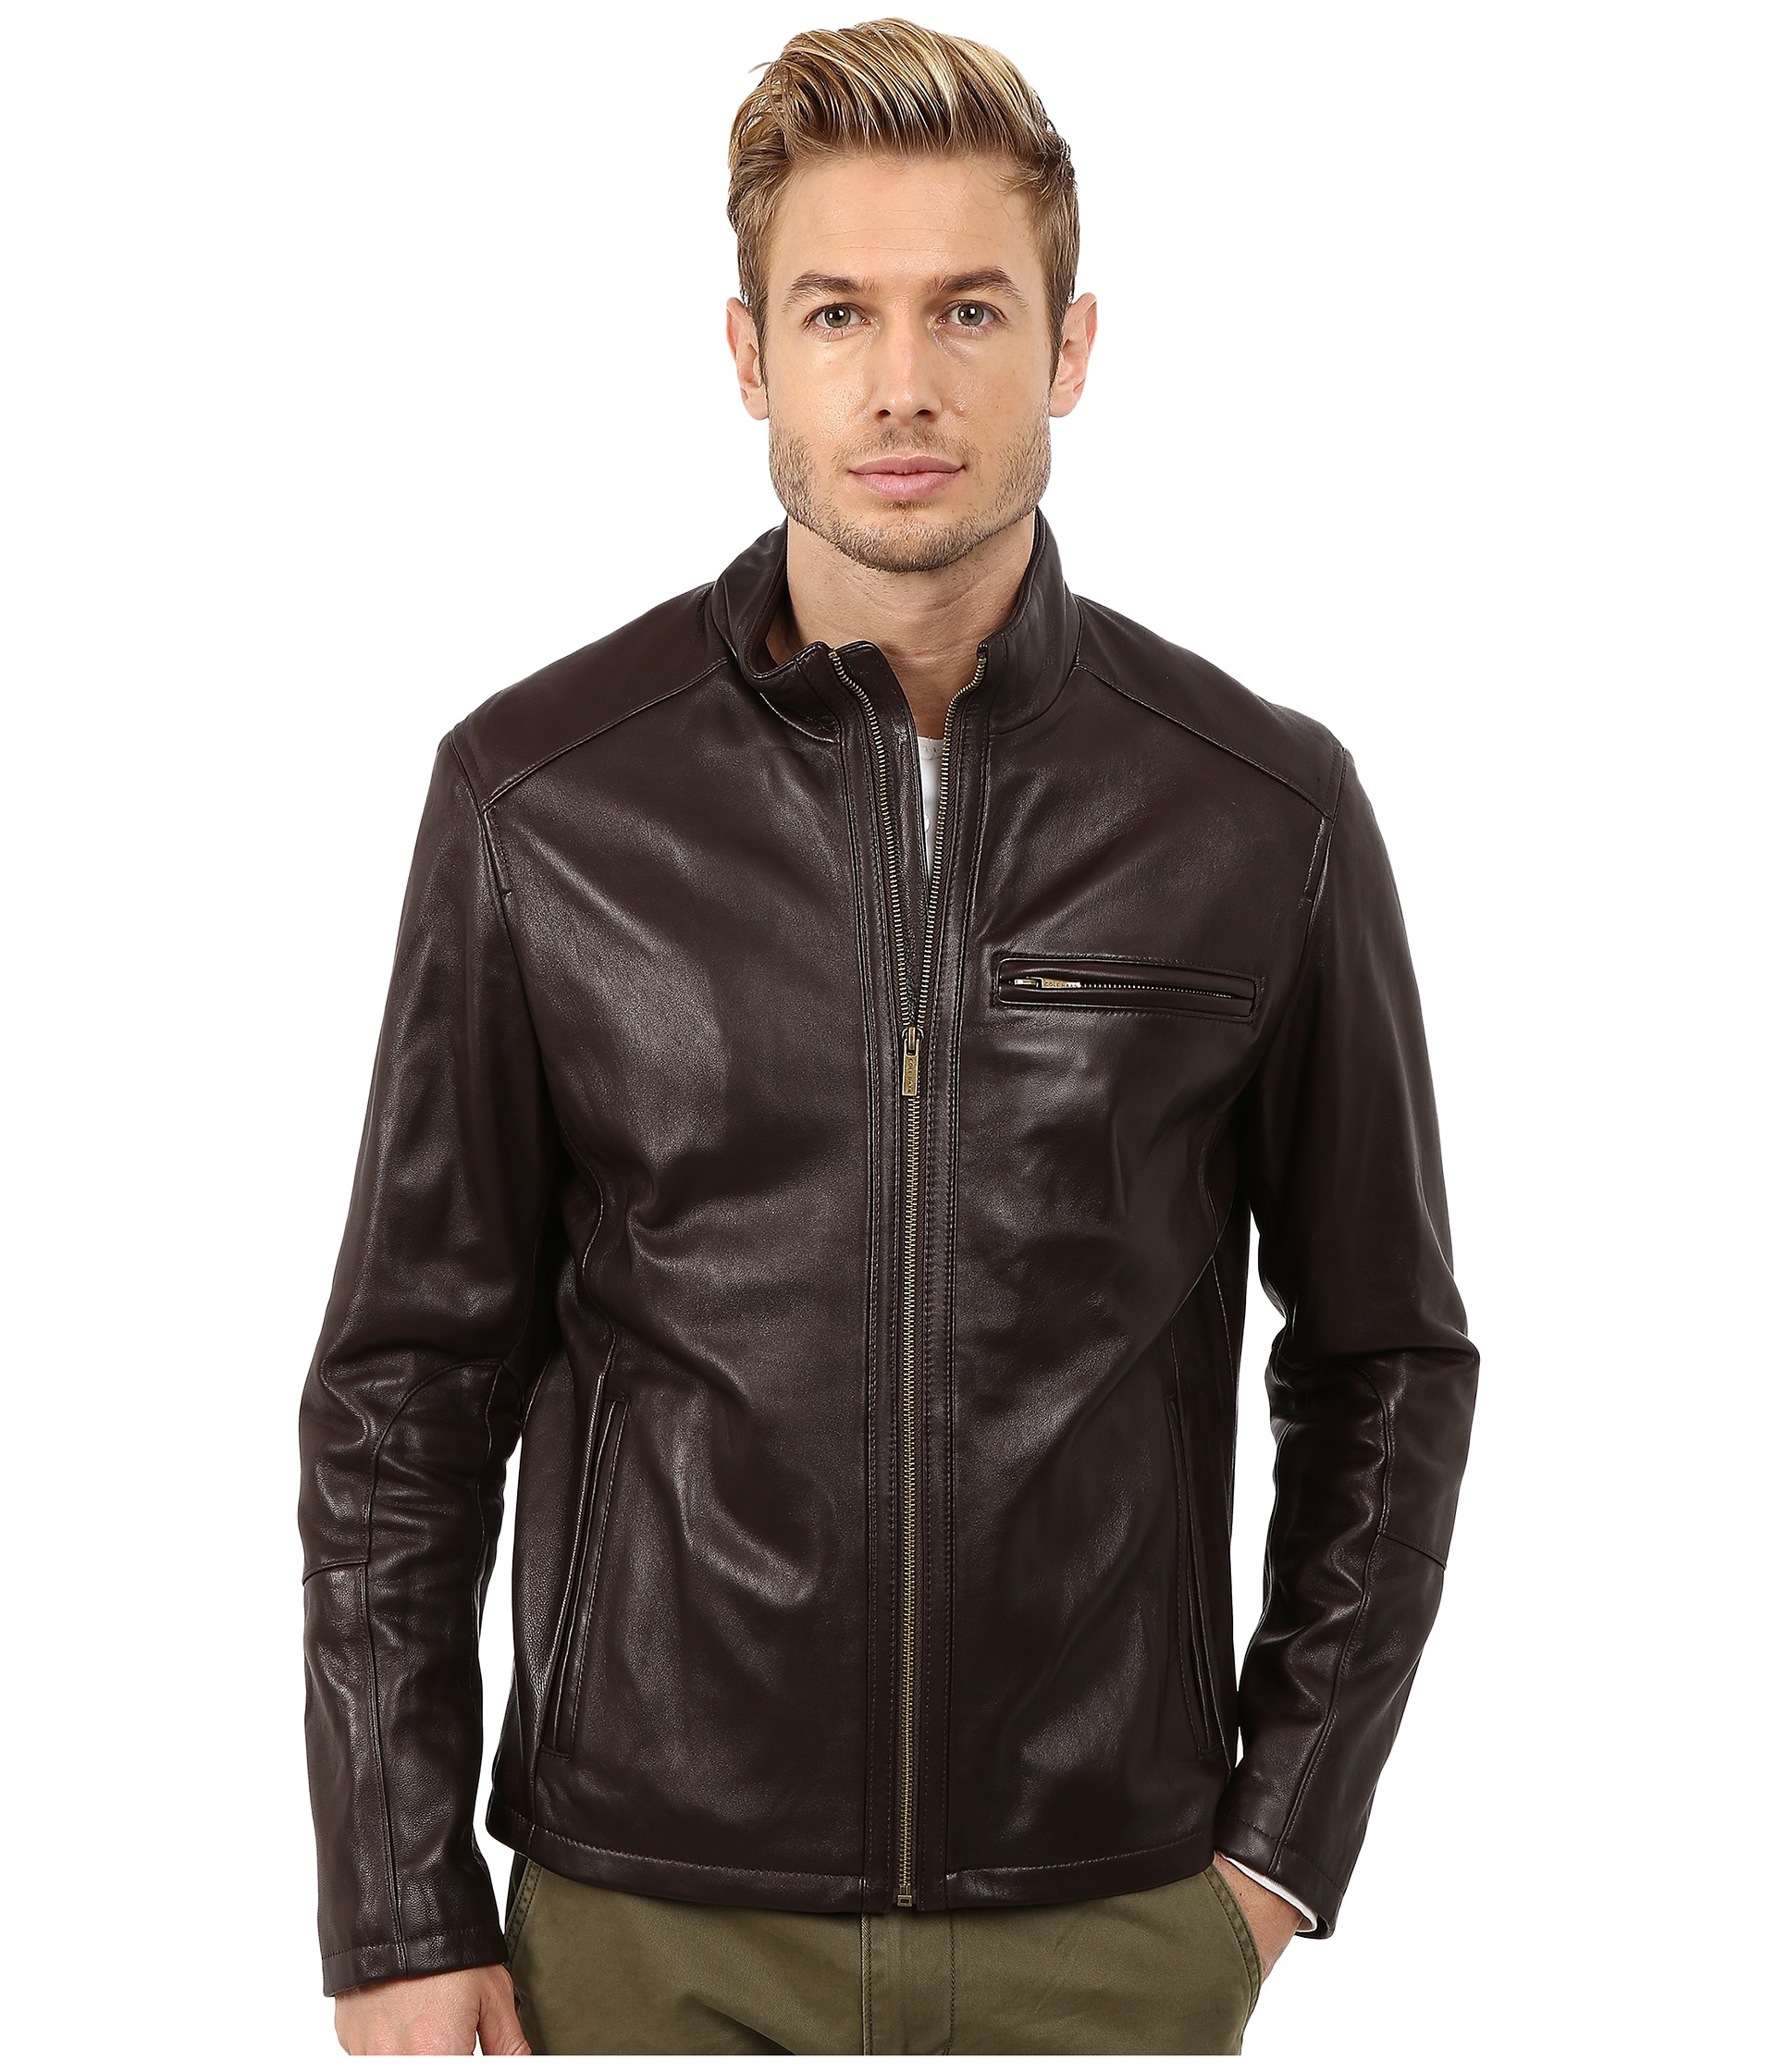 Leather jacket care - Lambskin Leather Jacket Care Products